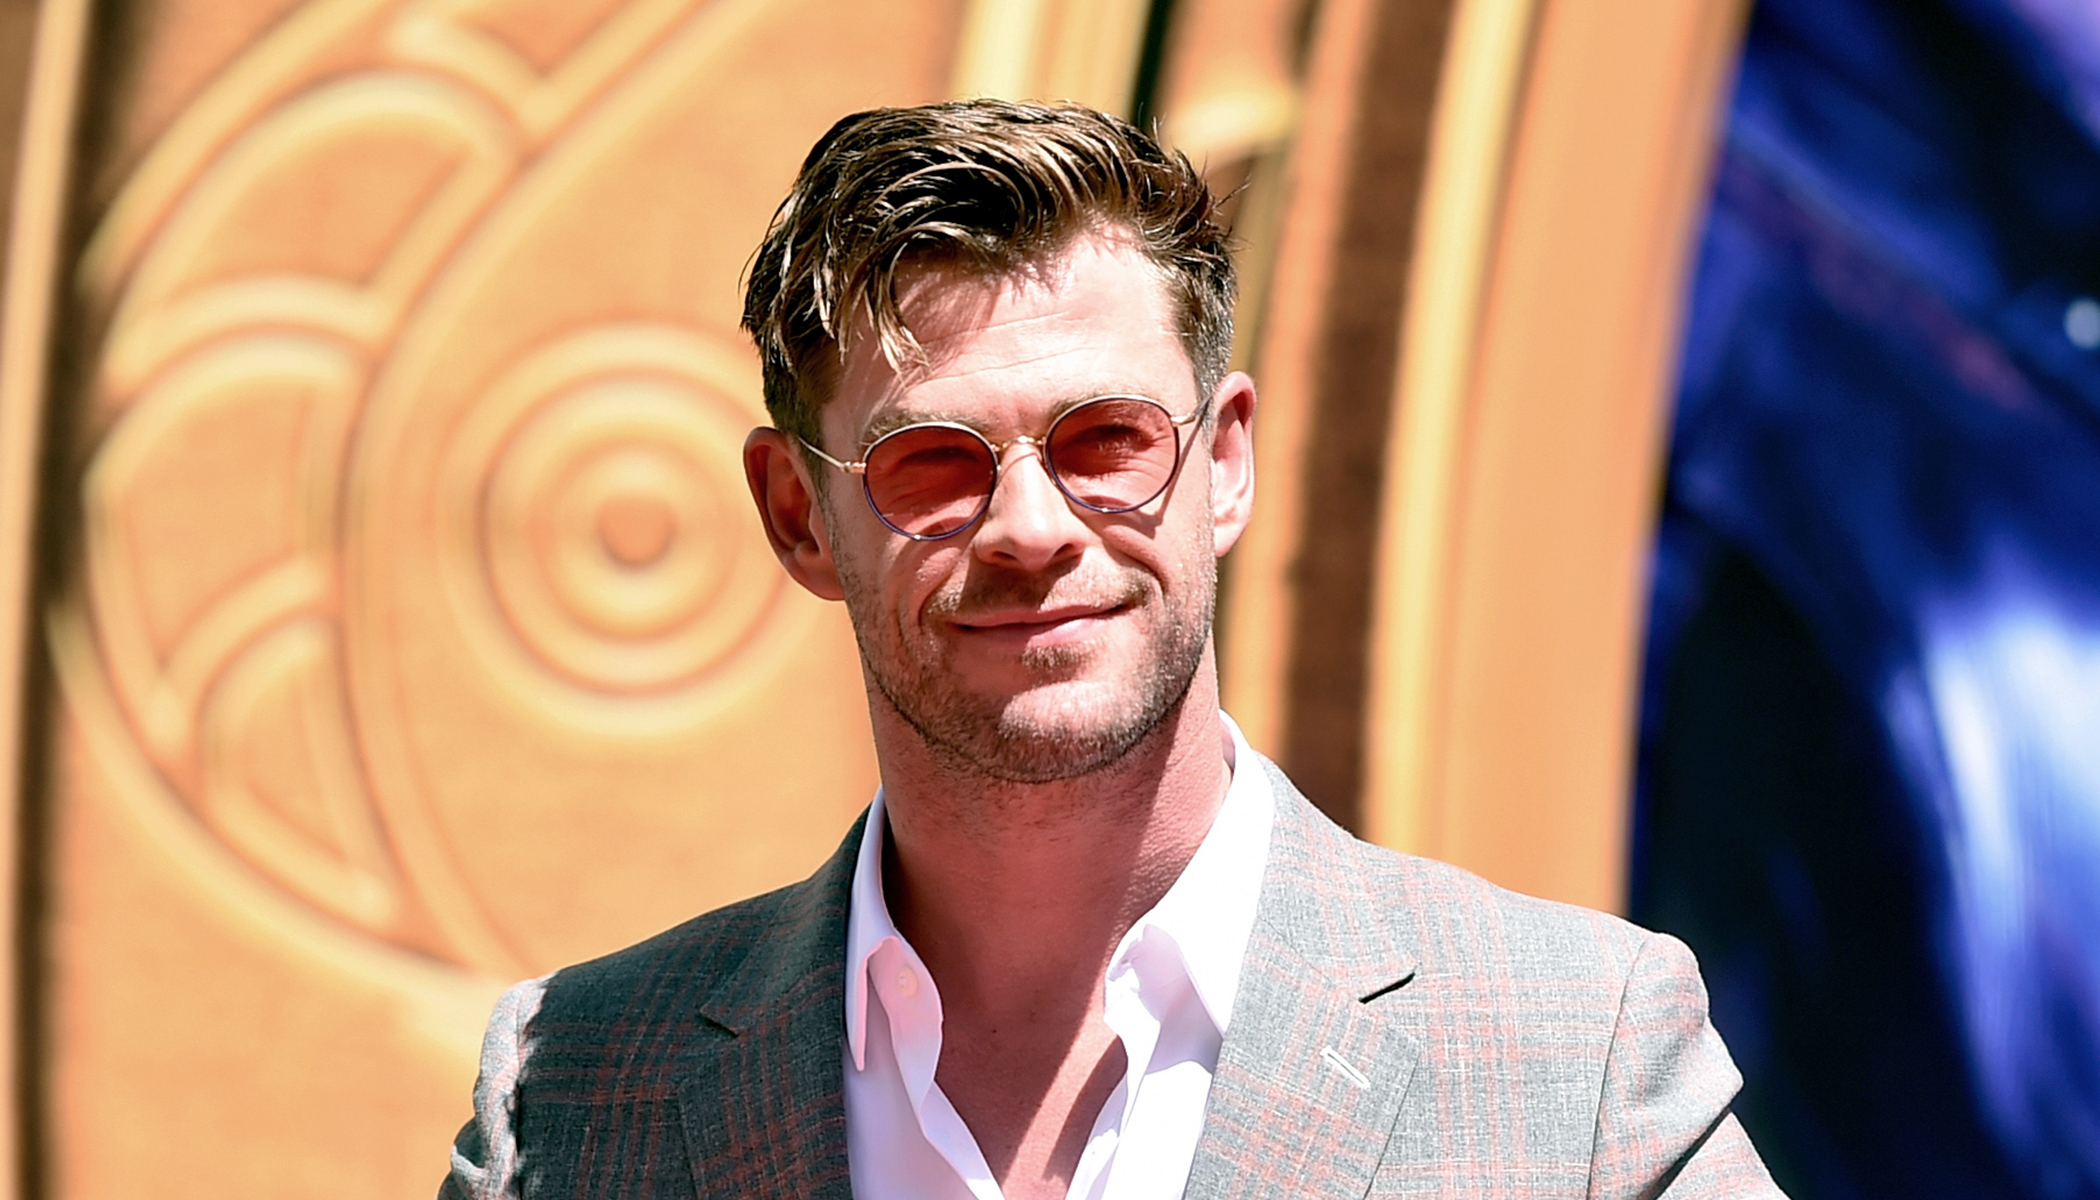 Chris Hemsworth Reveals He's Quitting Hollywood in Favor of Family Time